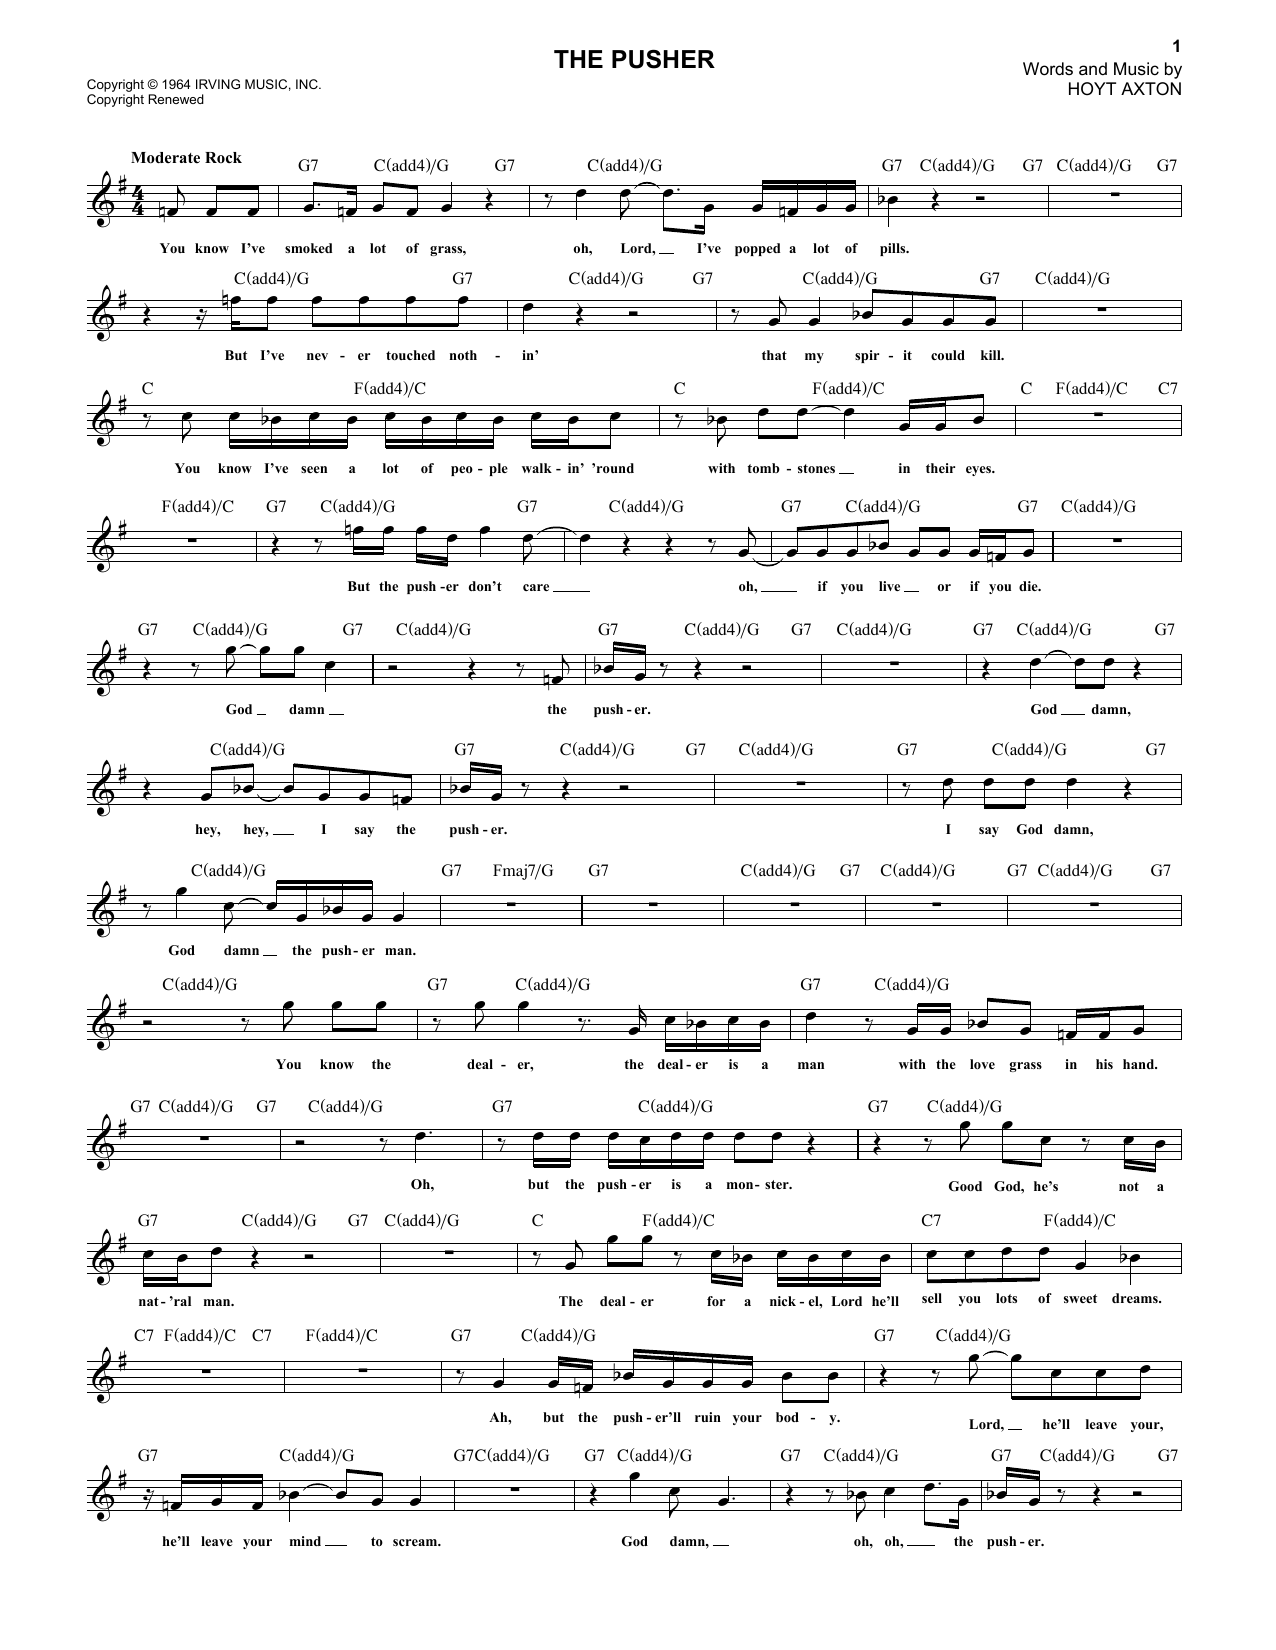 The Pusher Sheet Music